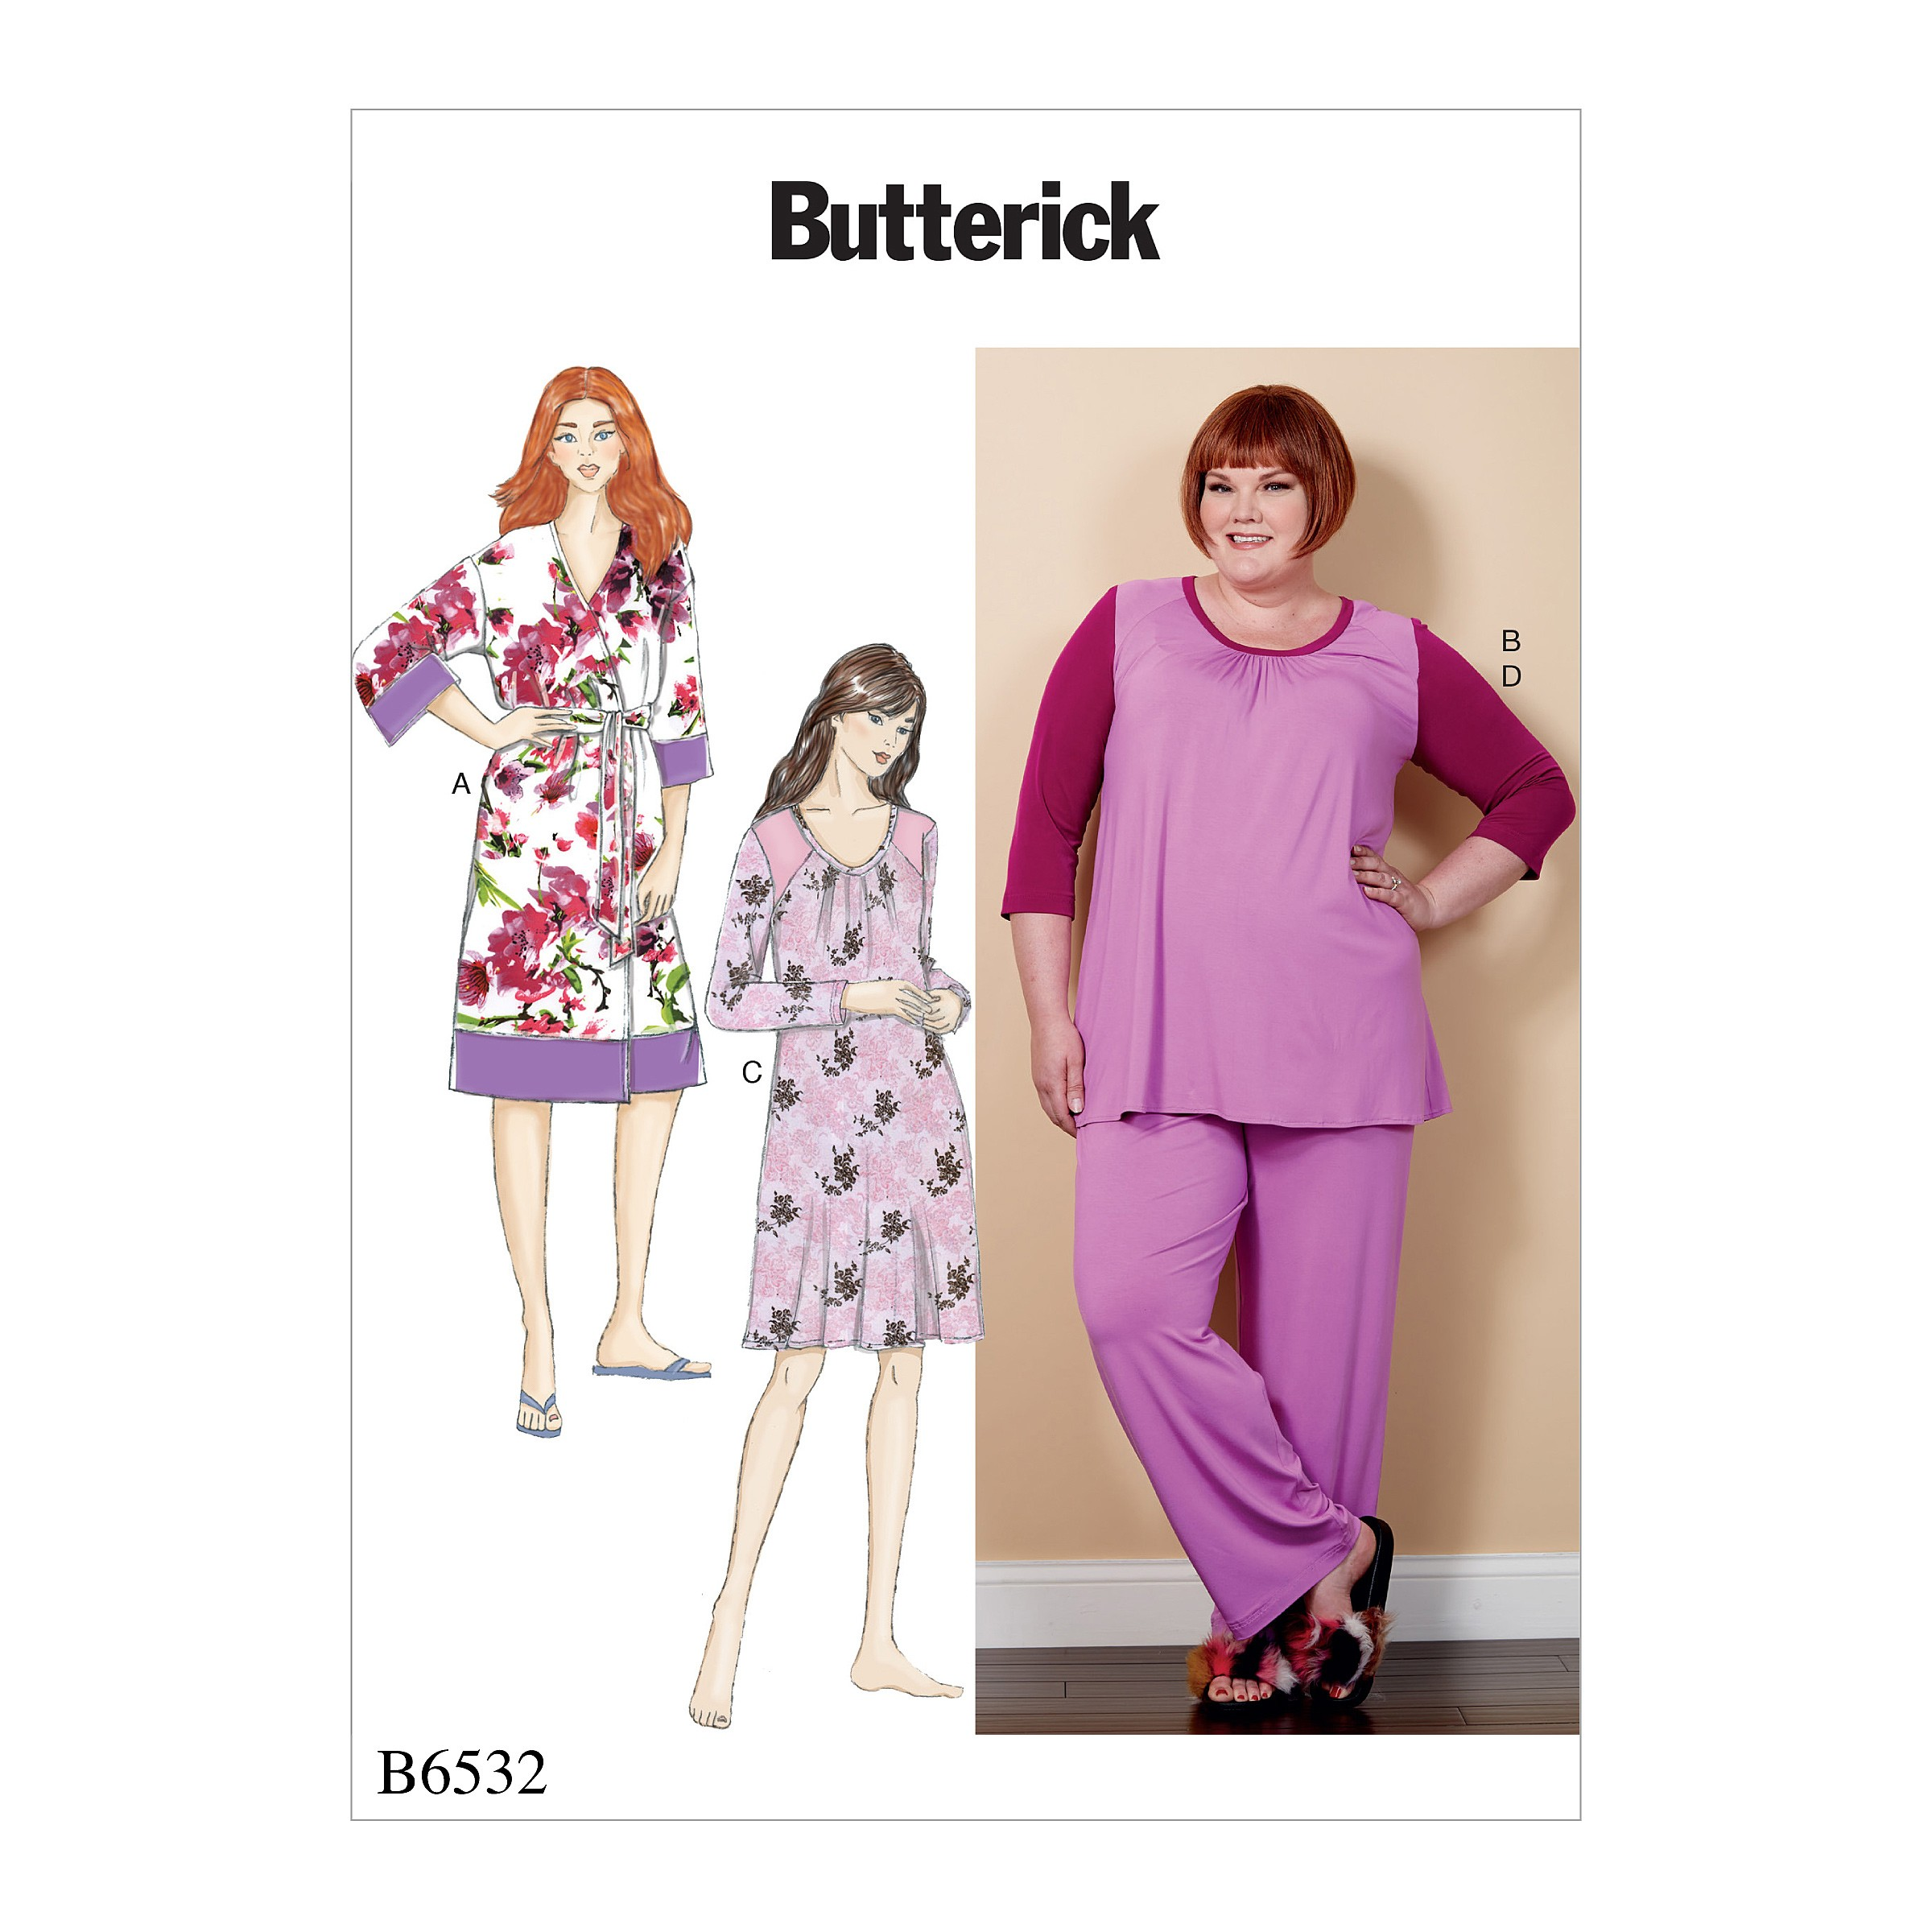 Butterick Sewing Pattern 6532 Misses' Robe, Sash, Top, Dress & Trousers